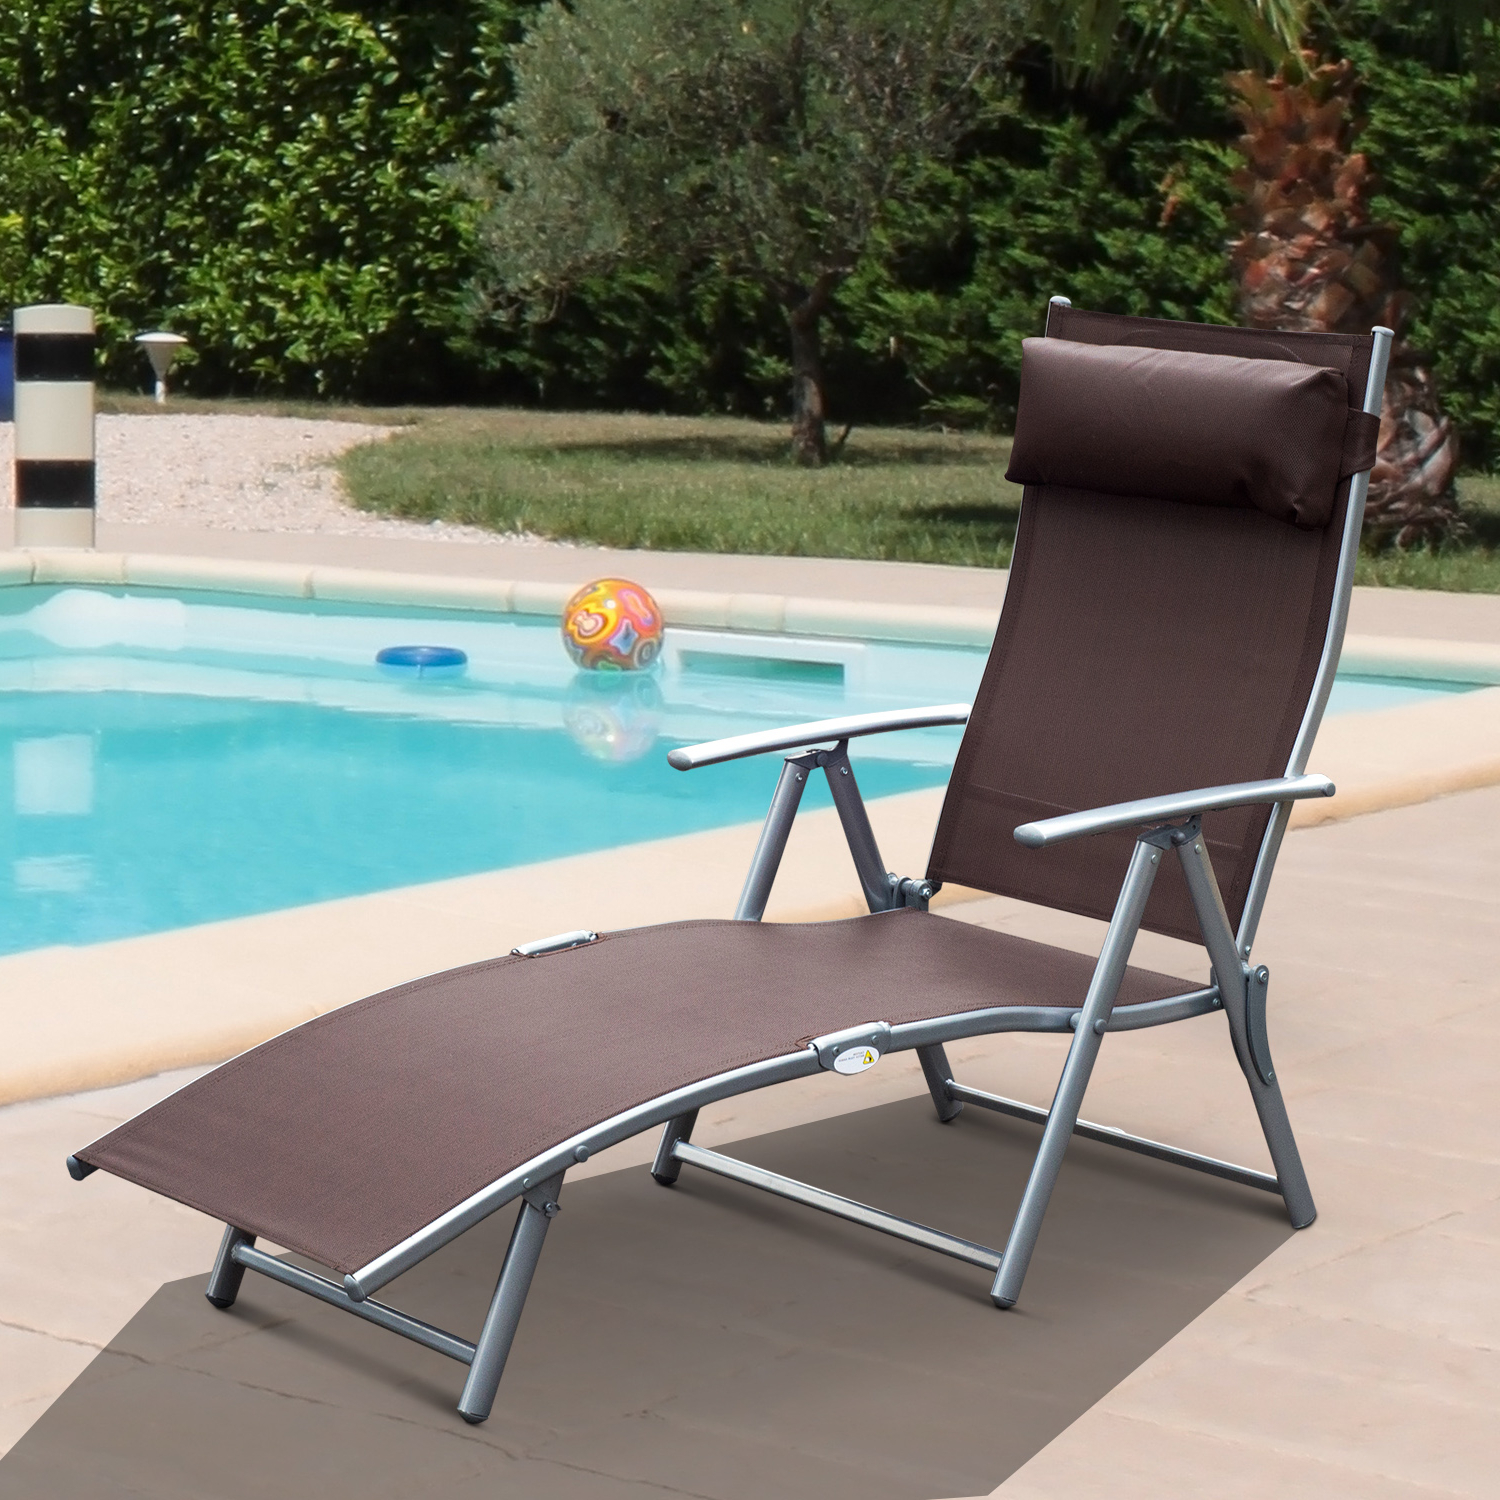 Adjustable Sling Fabric Patio Chaise Lounges In Well Known Details About Chaise Lounge Chair Folding Pool Beach Adjustable Patio Furniture Recliner Brown (View 11 of 25)